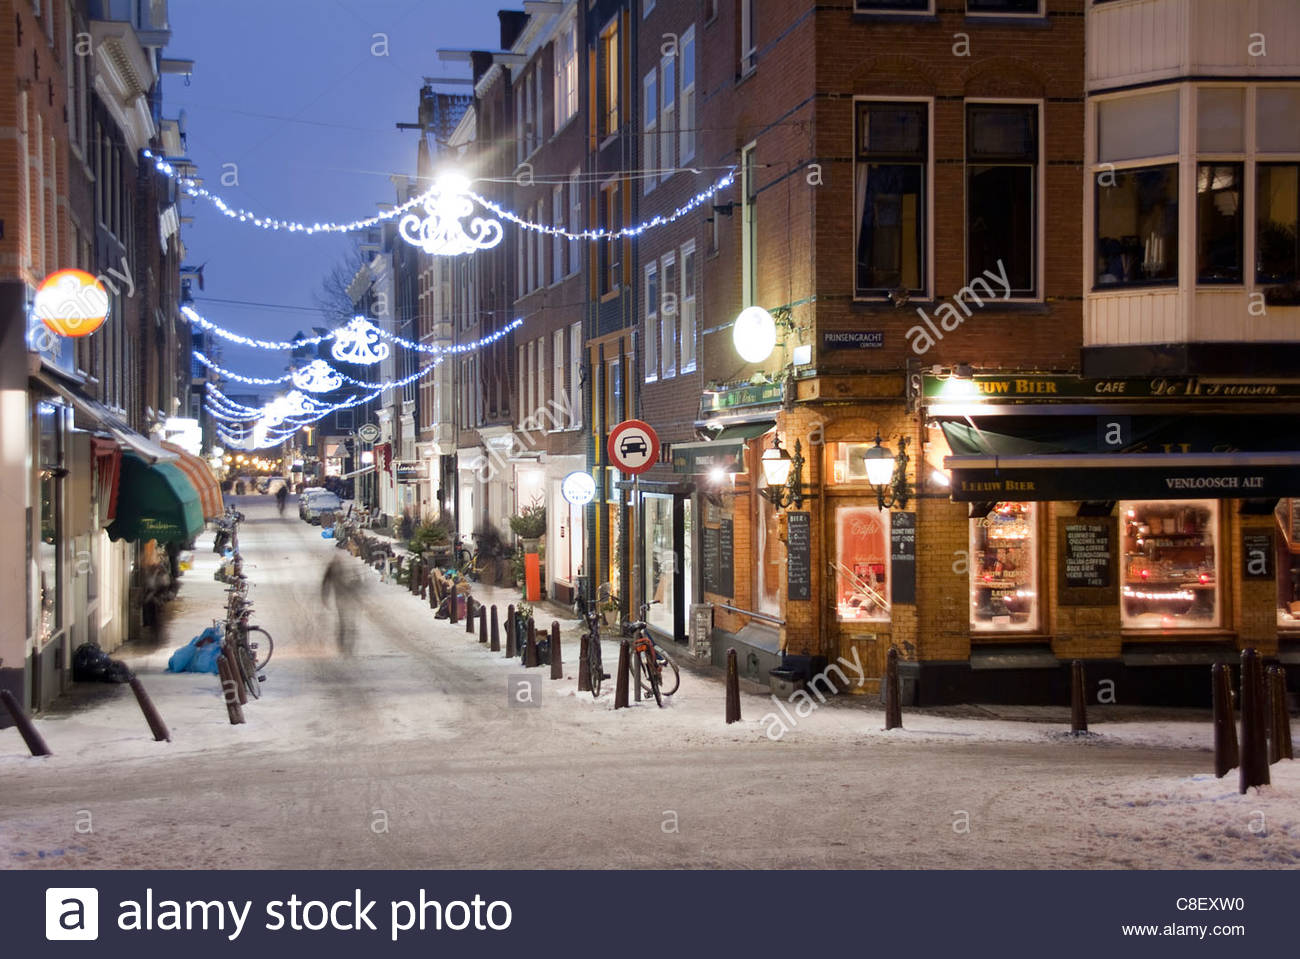 A street scene at Christmastime. - Stock Image